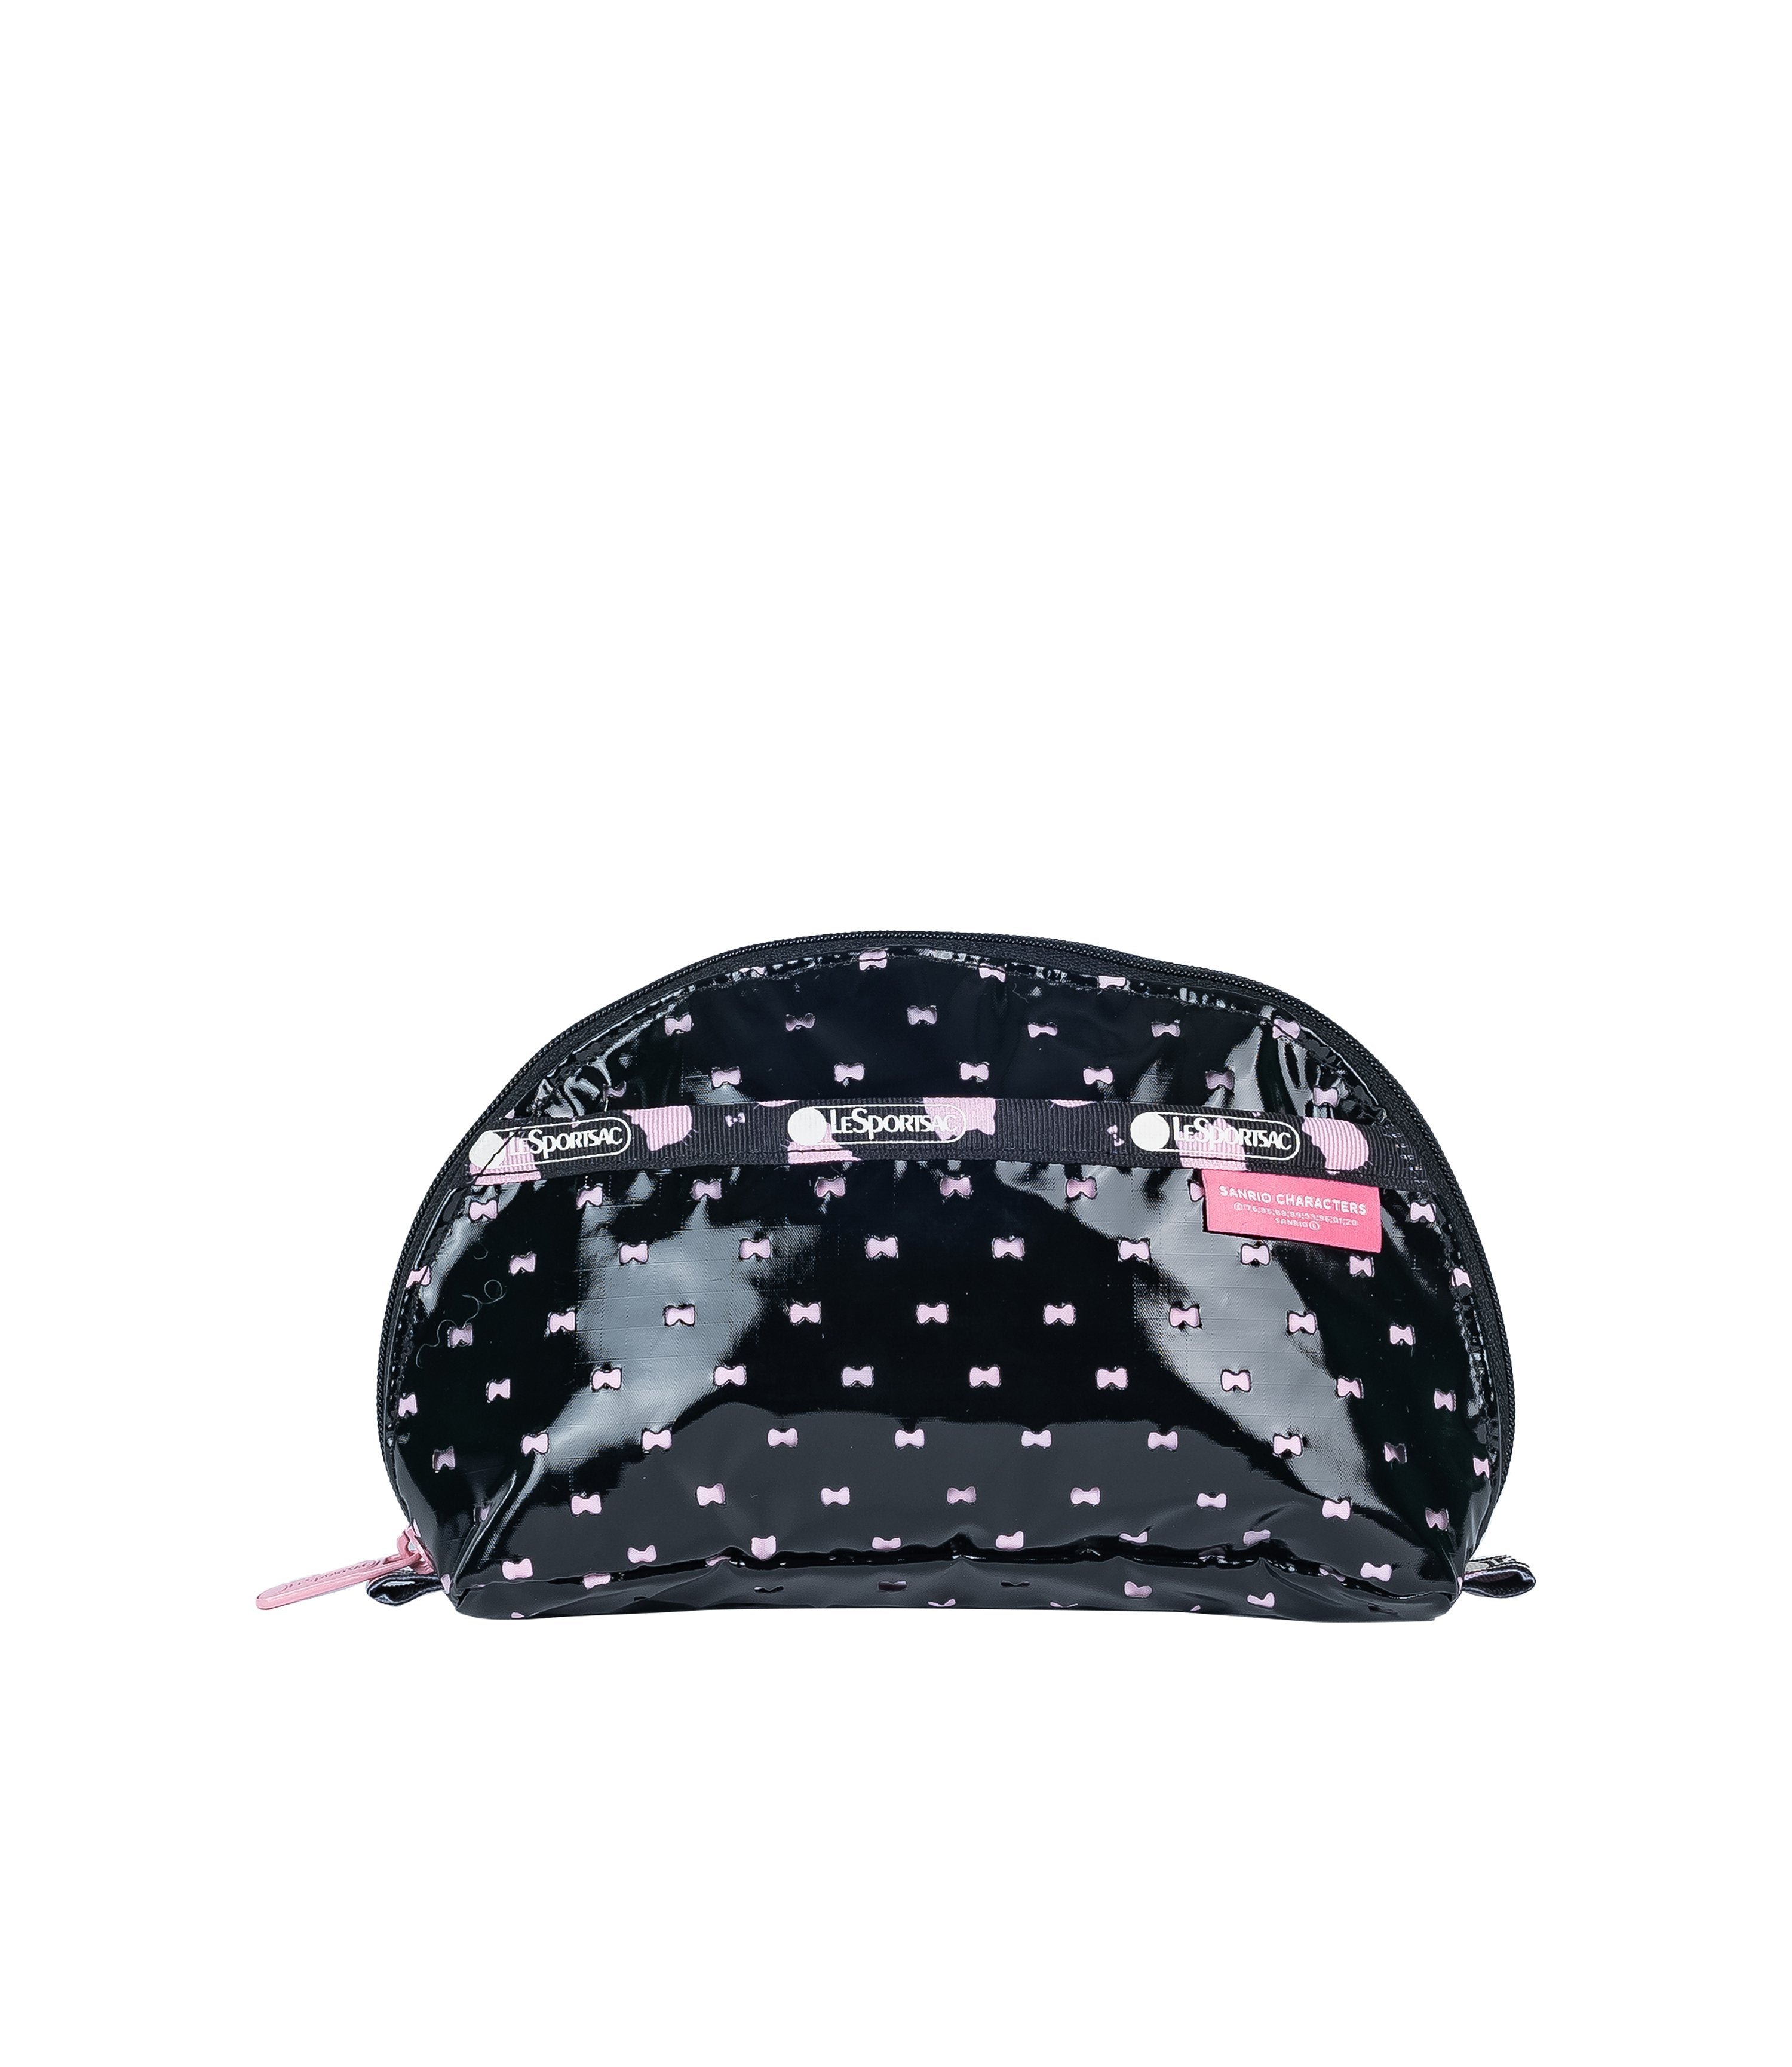 LeSportsac - Dome Cosmetic - Hello Kitty Perf Noir - Accessories